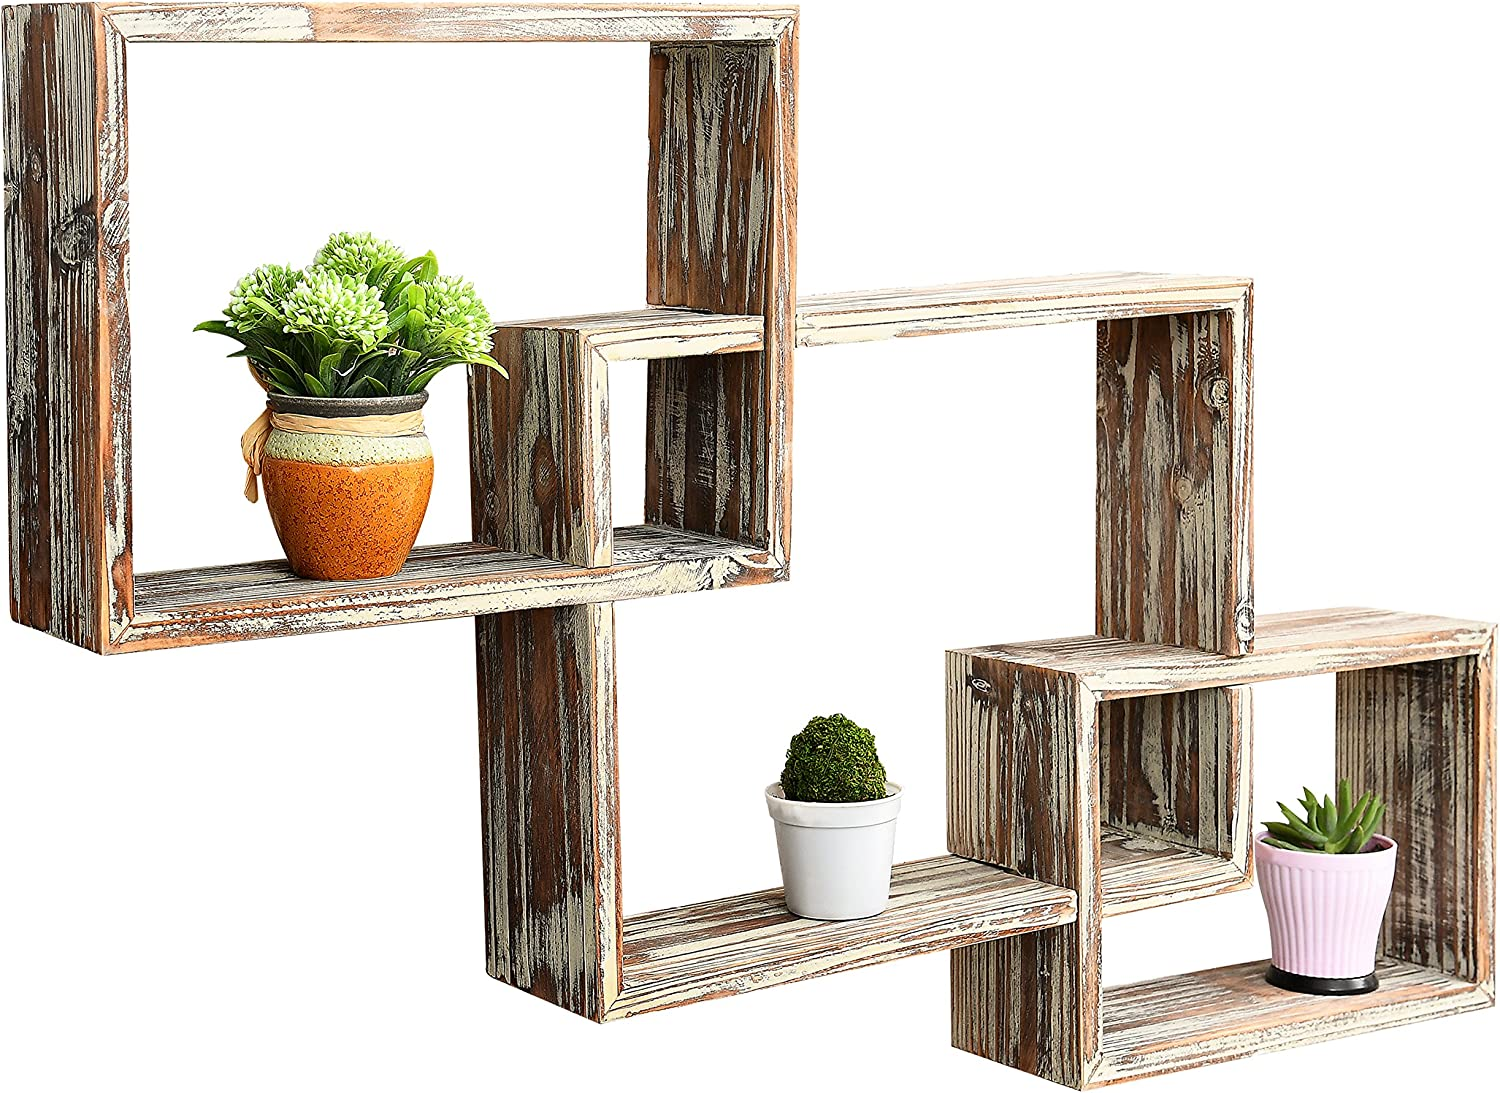 Compartment Wall Shelf Rustic Wood Storage Display Shelves Hanging Rack House